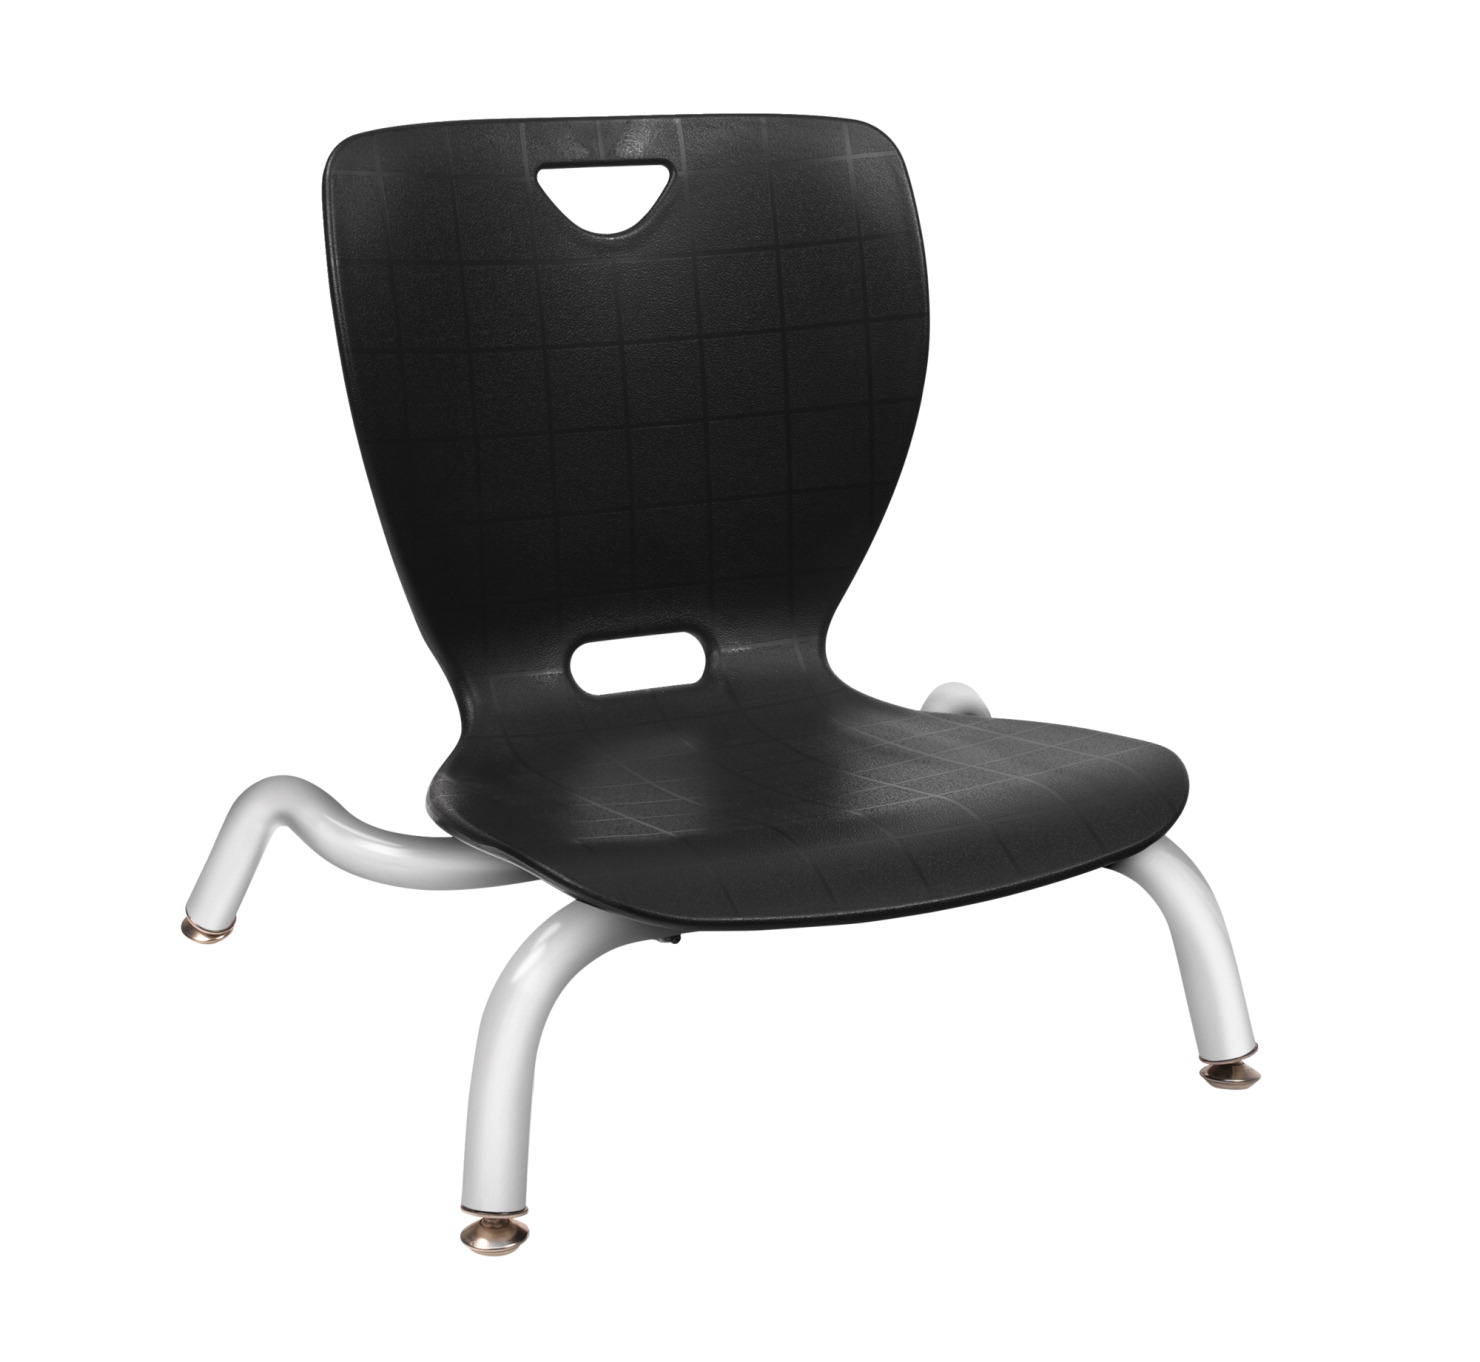 Classroom Select NeoLounge Smooth Back Chair 6 Inch Seat Chrome FrameVarious Options